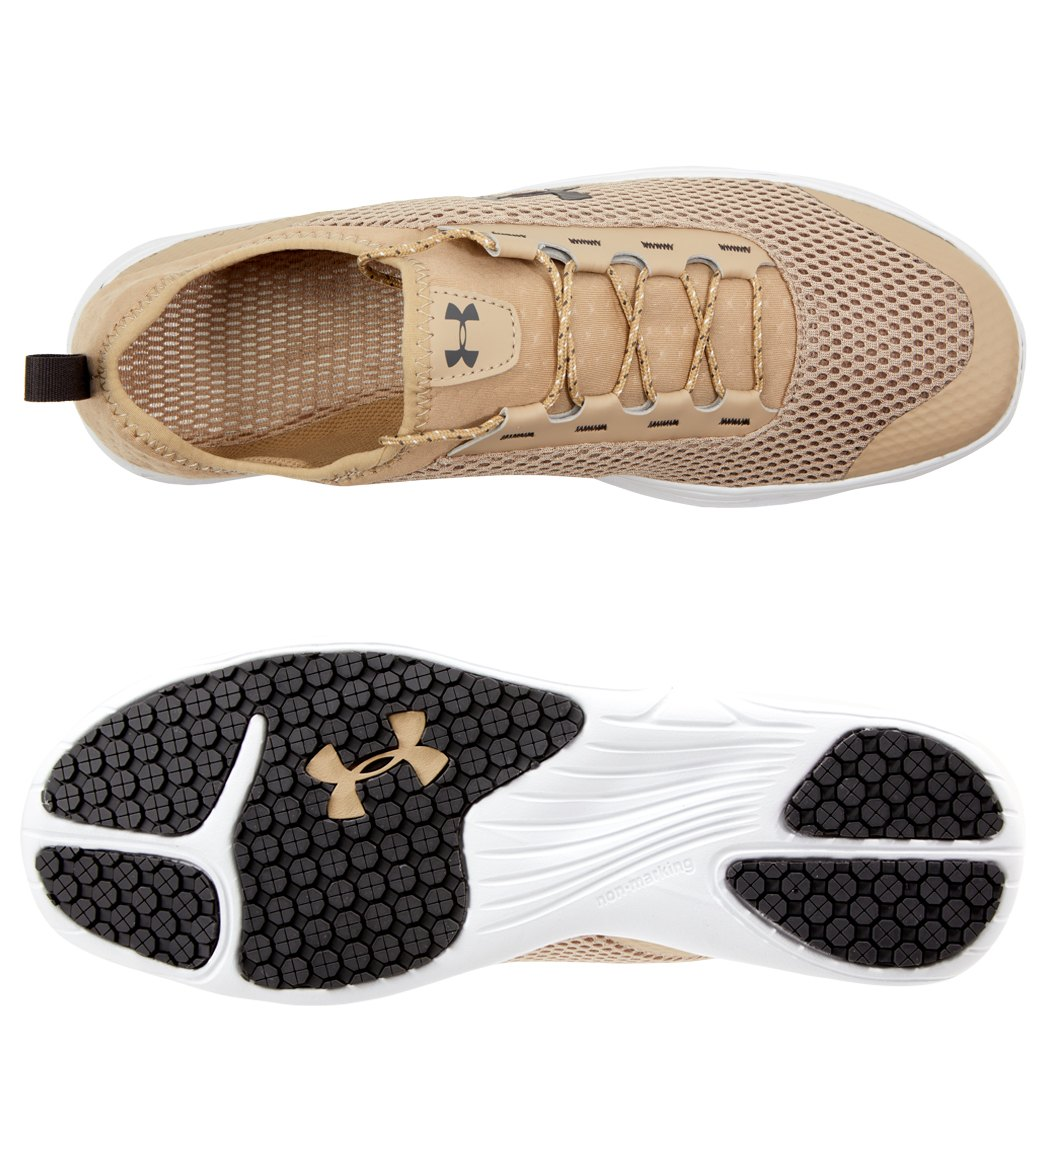 be22568d2a20 Under Armour Men s Kilchis Water Shoe at SwimOutlet.com - Free Shipping